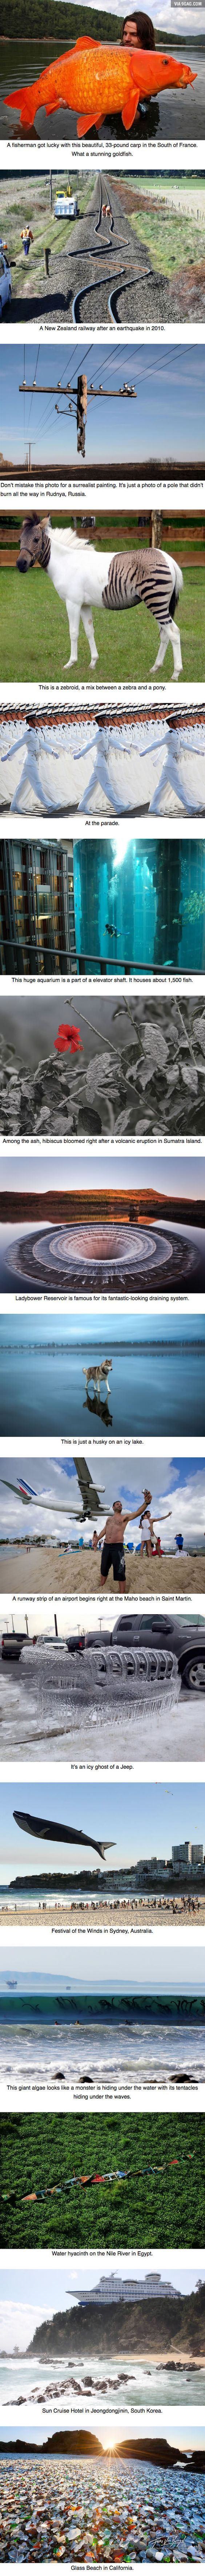 15 Photos That Prove Reality Is Better Than Photoshop